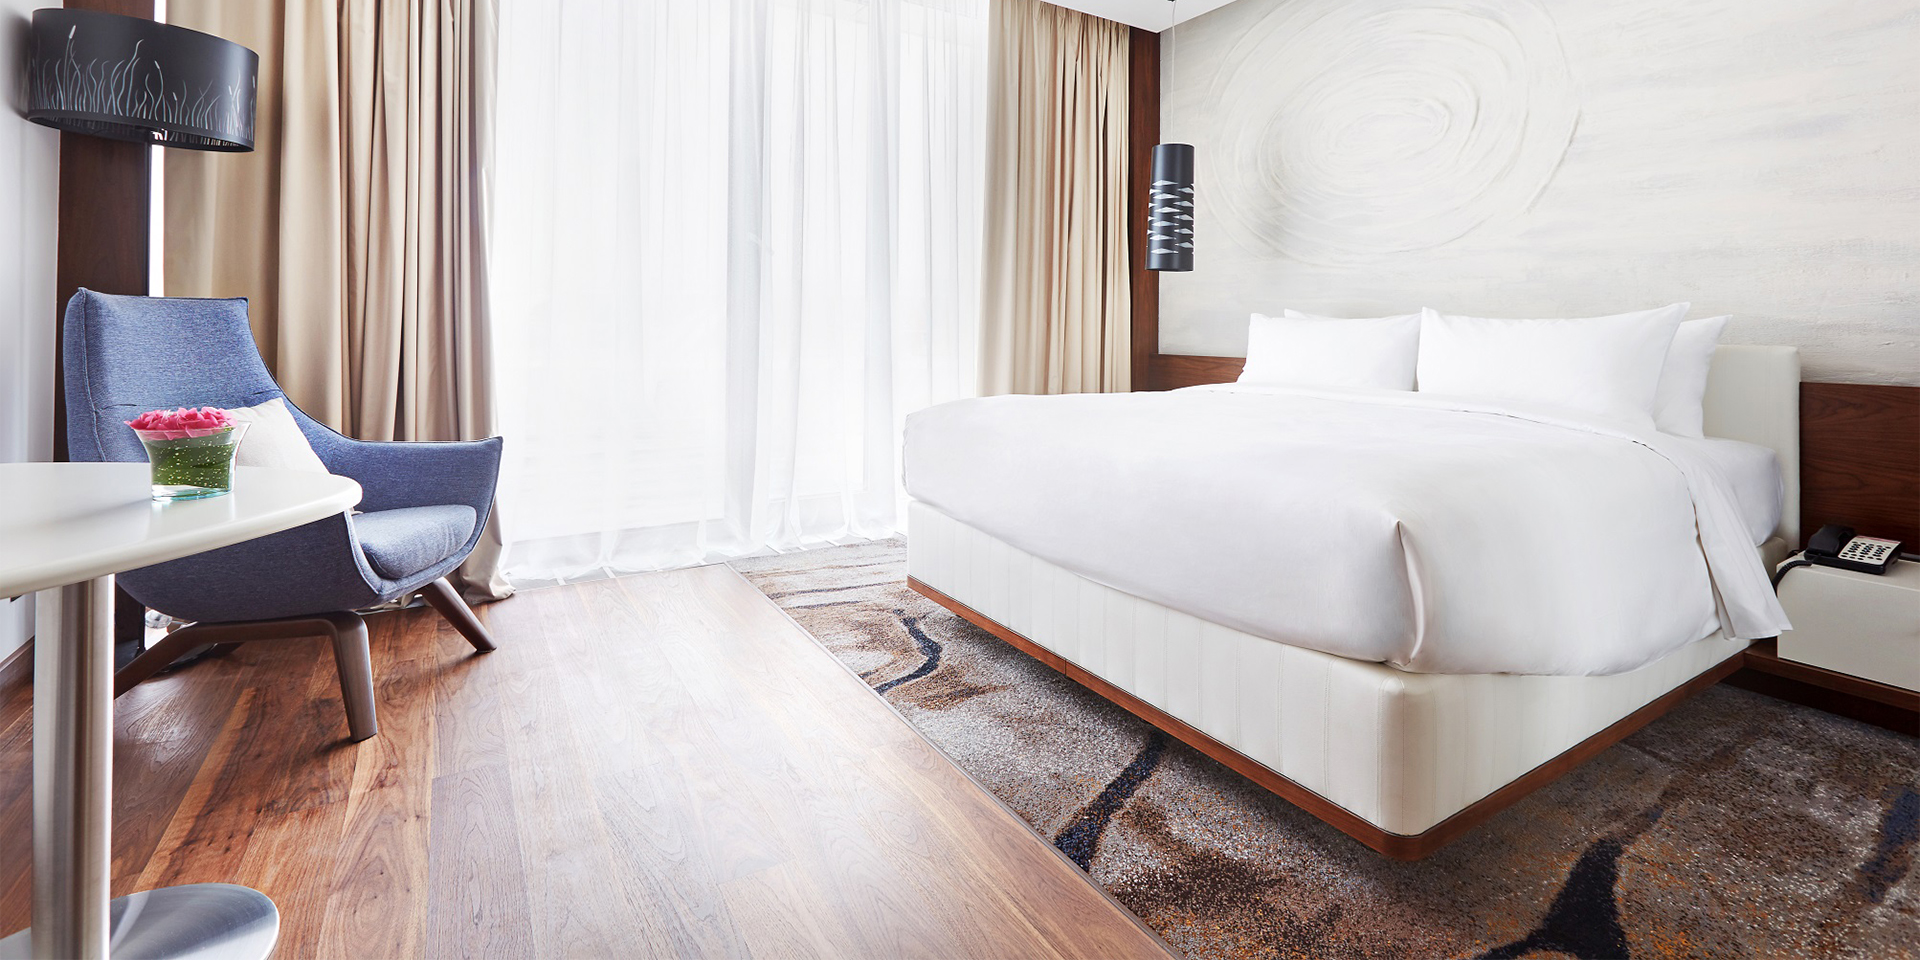 Marriott International opens its second hotel in Belarus with the addition of Minsk Marriott Hotel